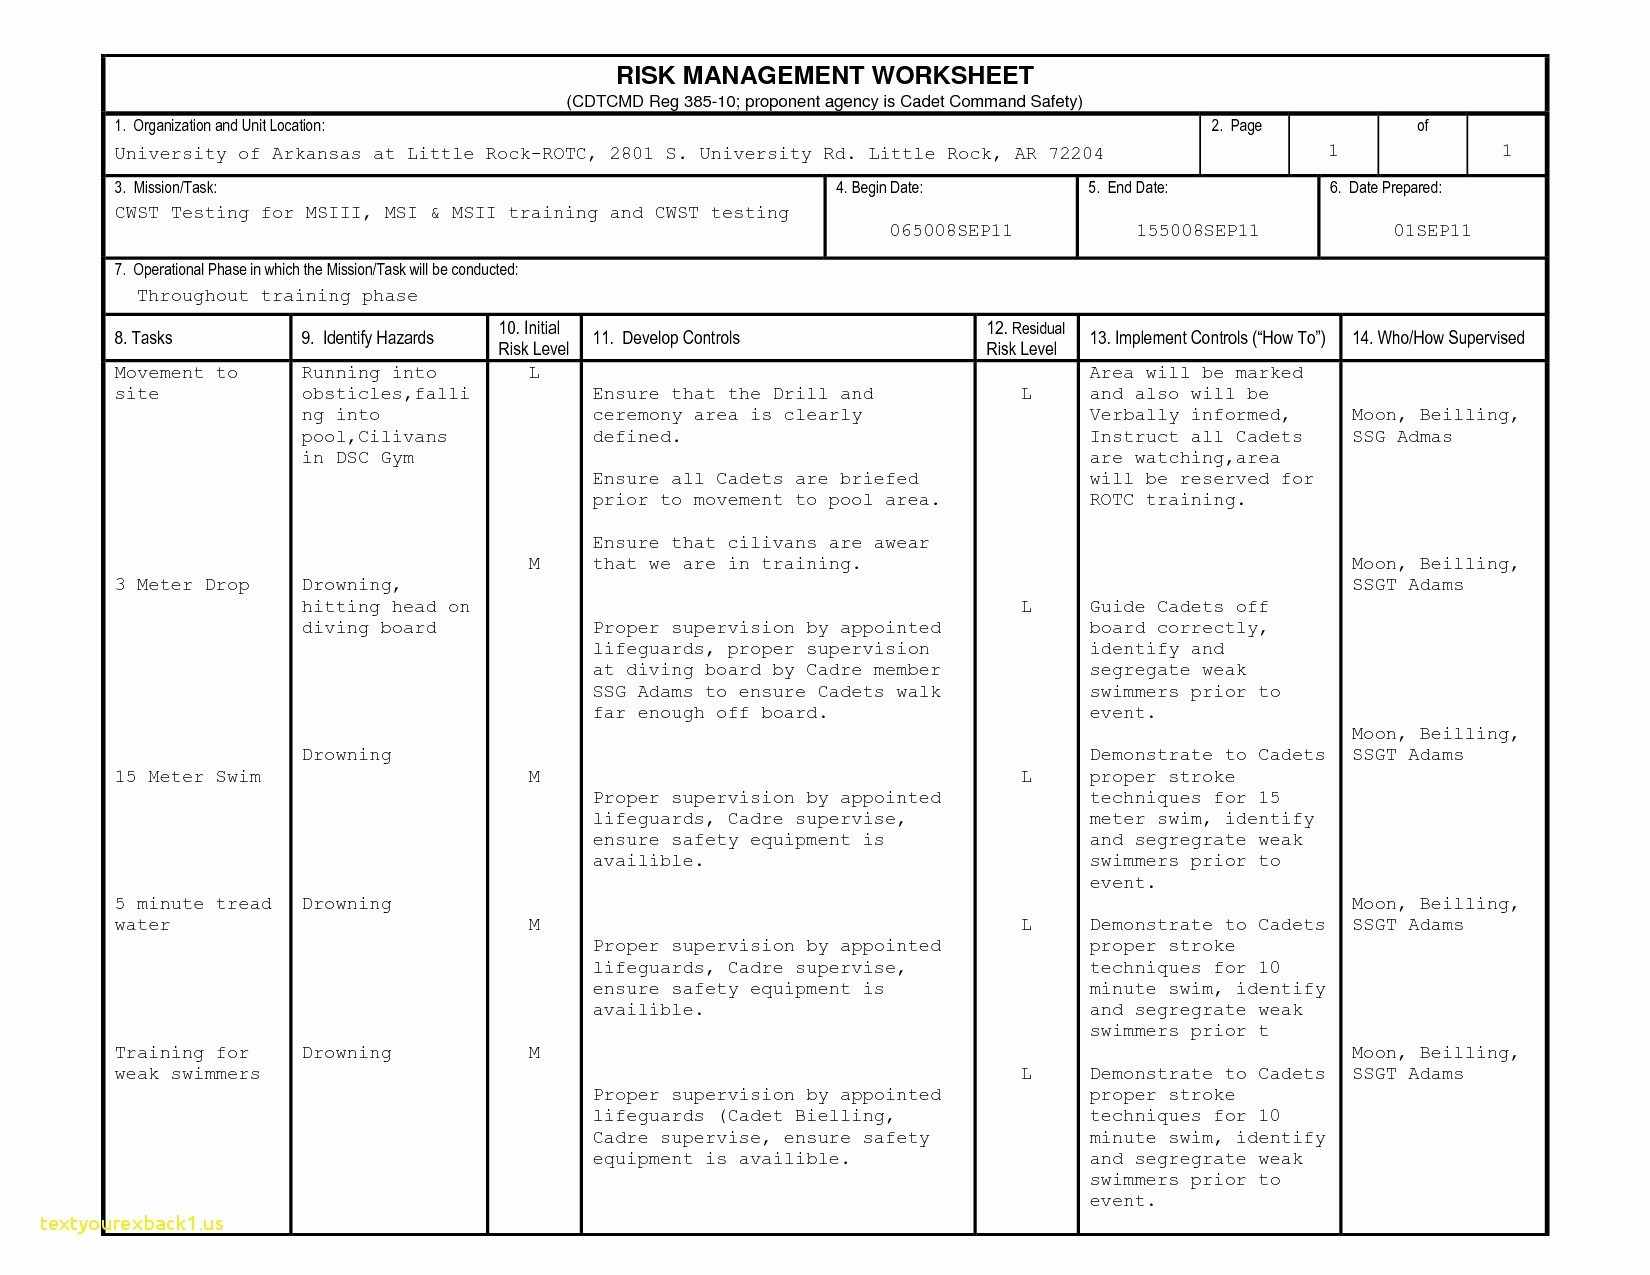 Deliberate Risk Assessment Worksheet Image Collections